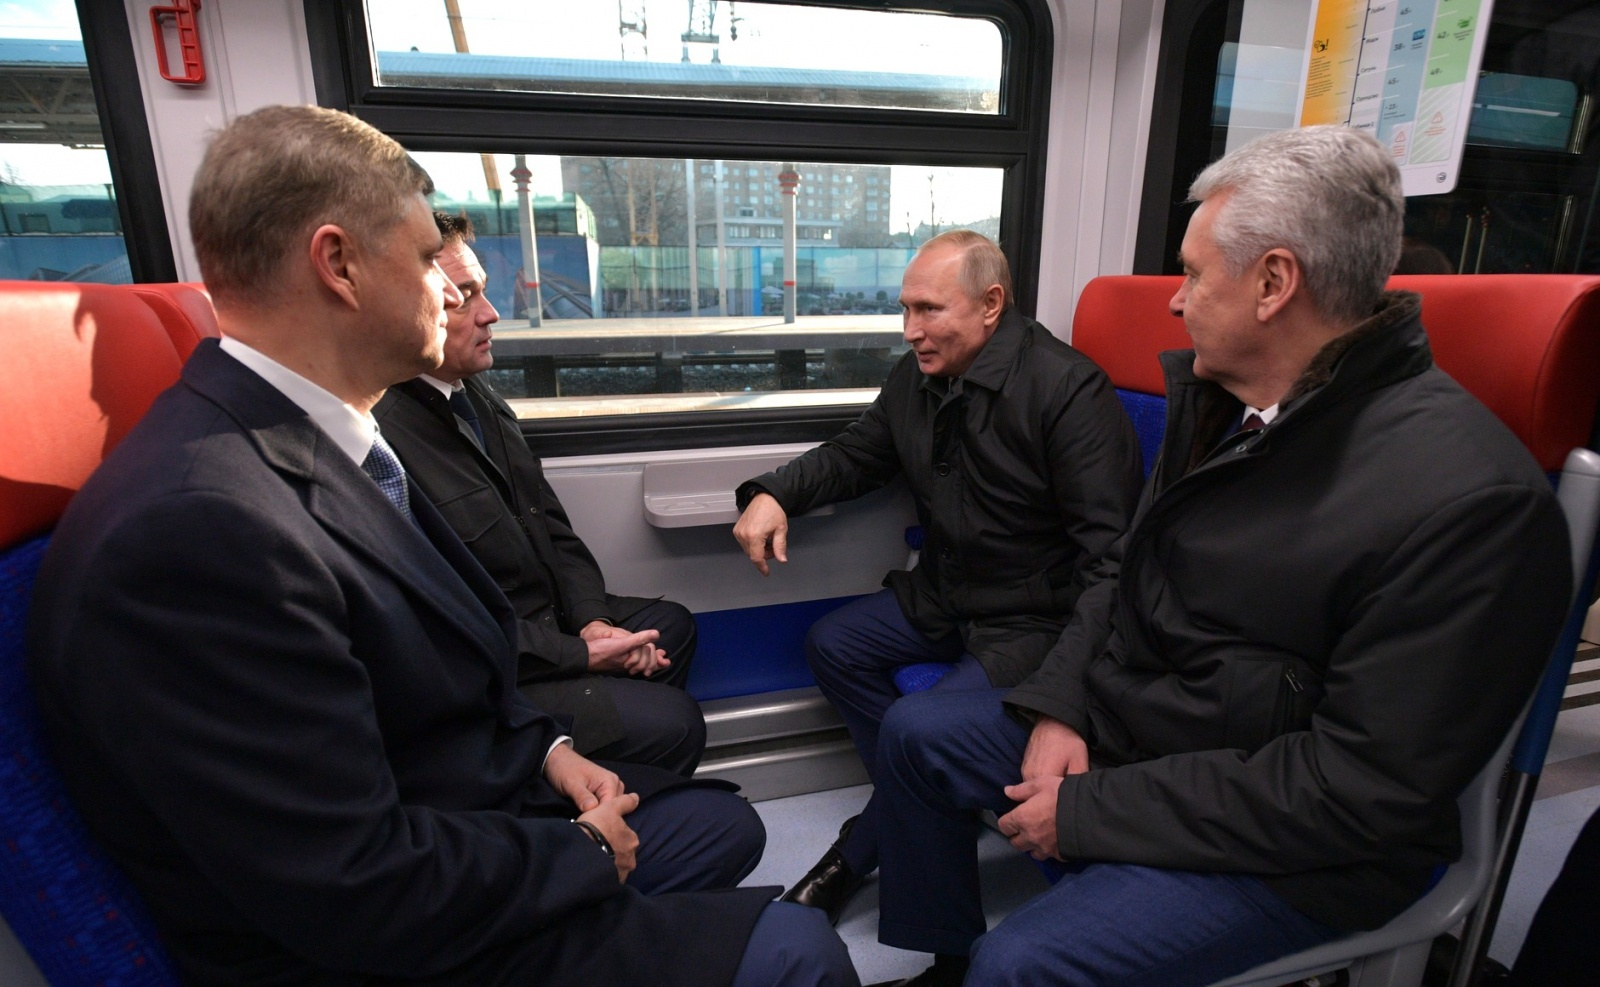 Vladimir Putin was amongst the first passenders of D1